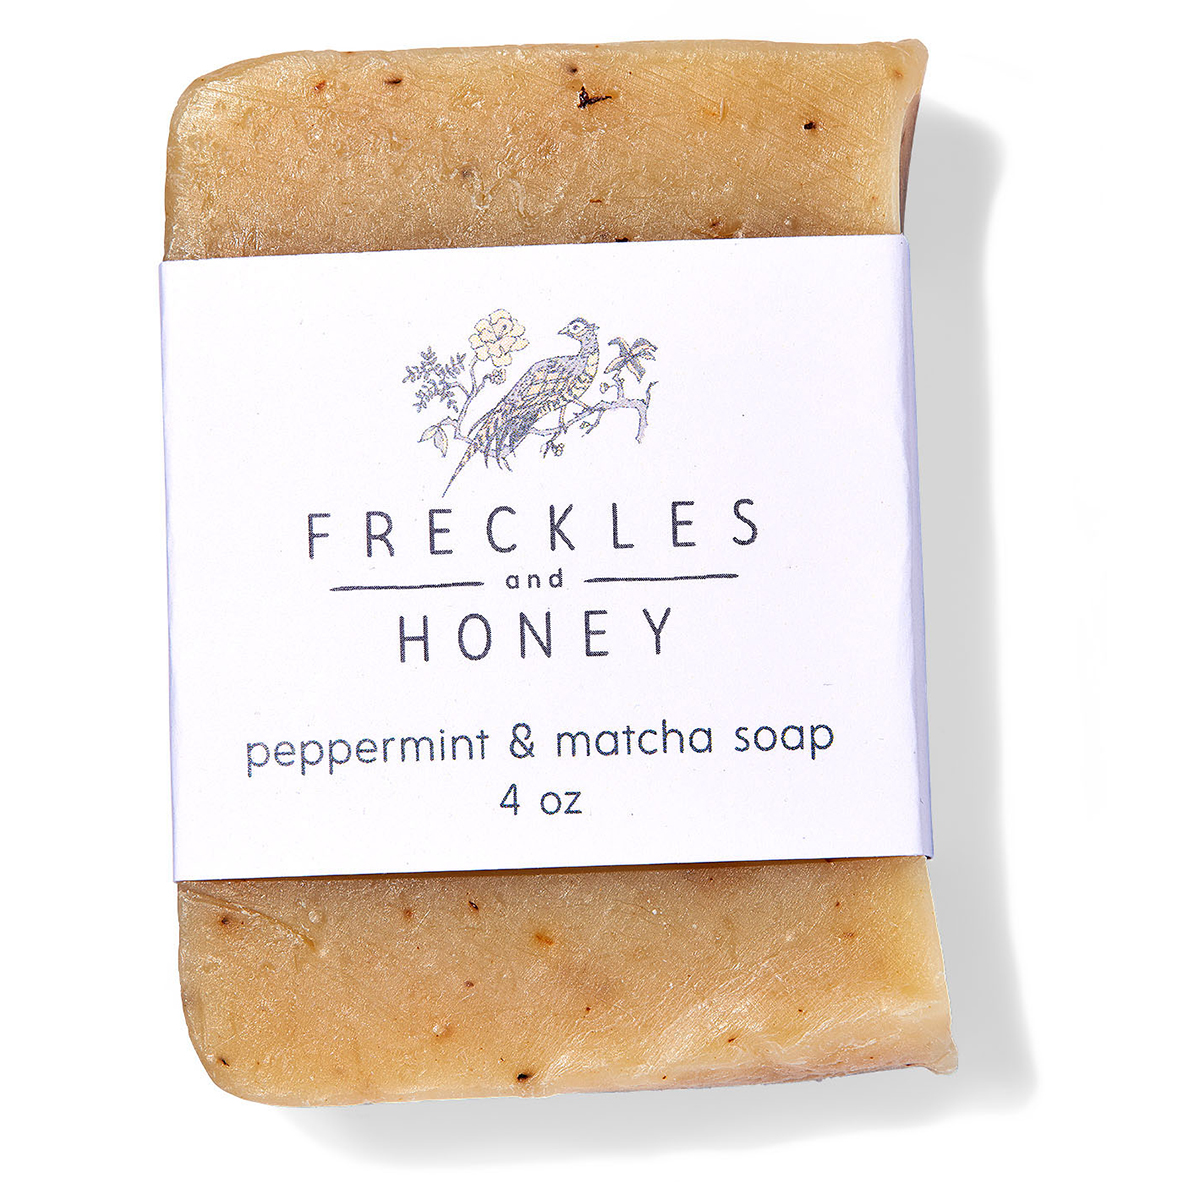 freckles and honey soap bar